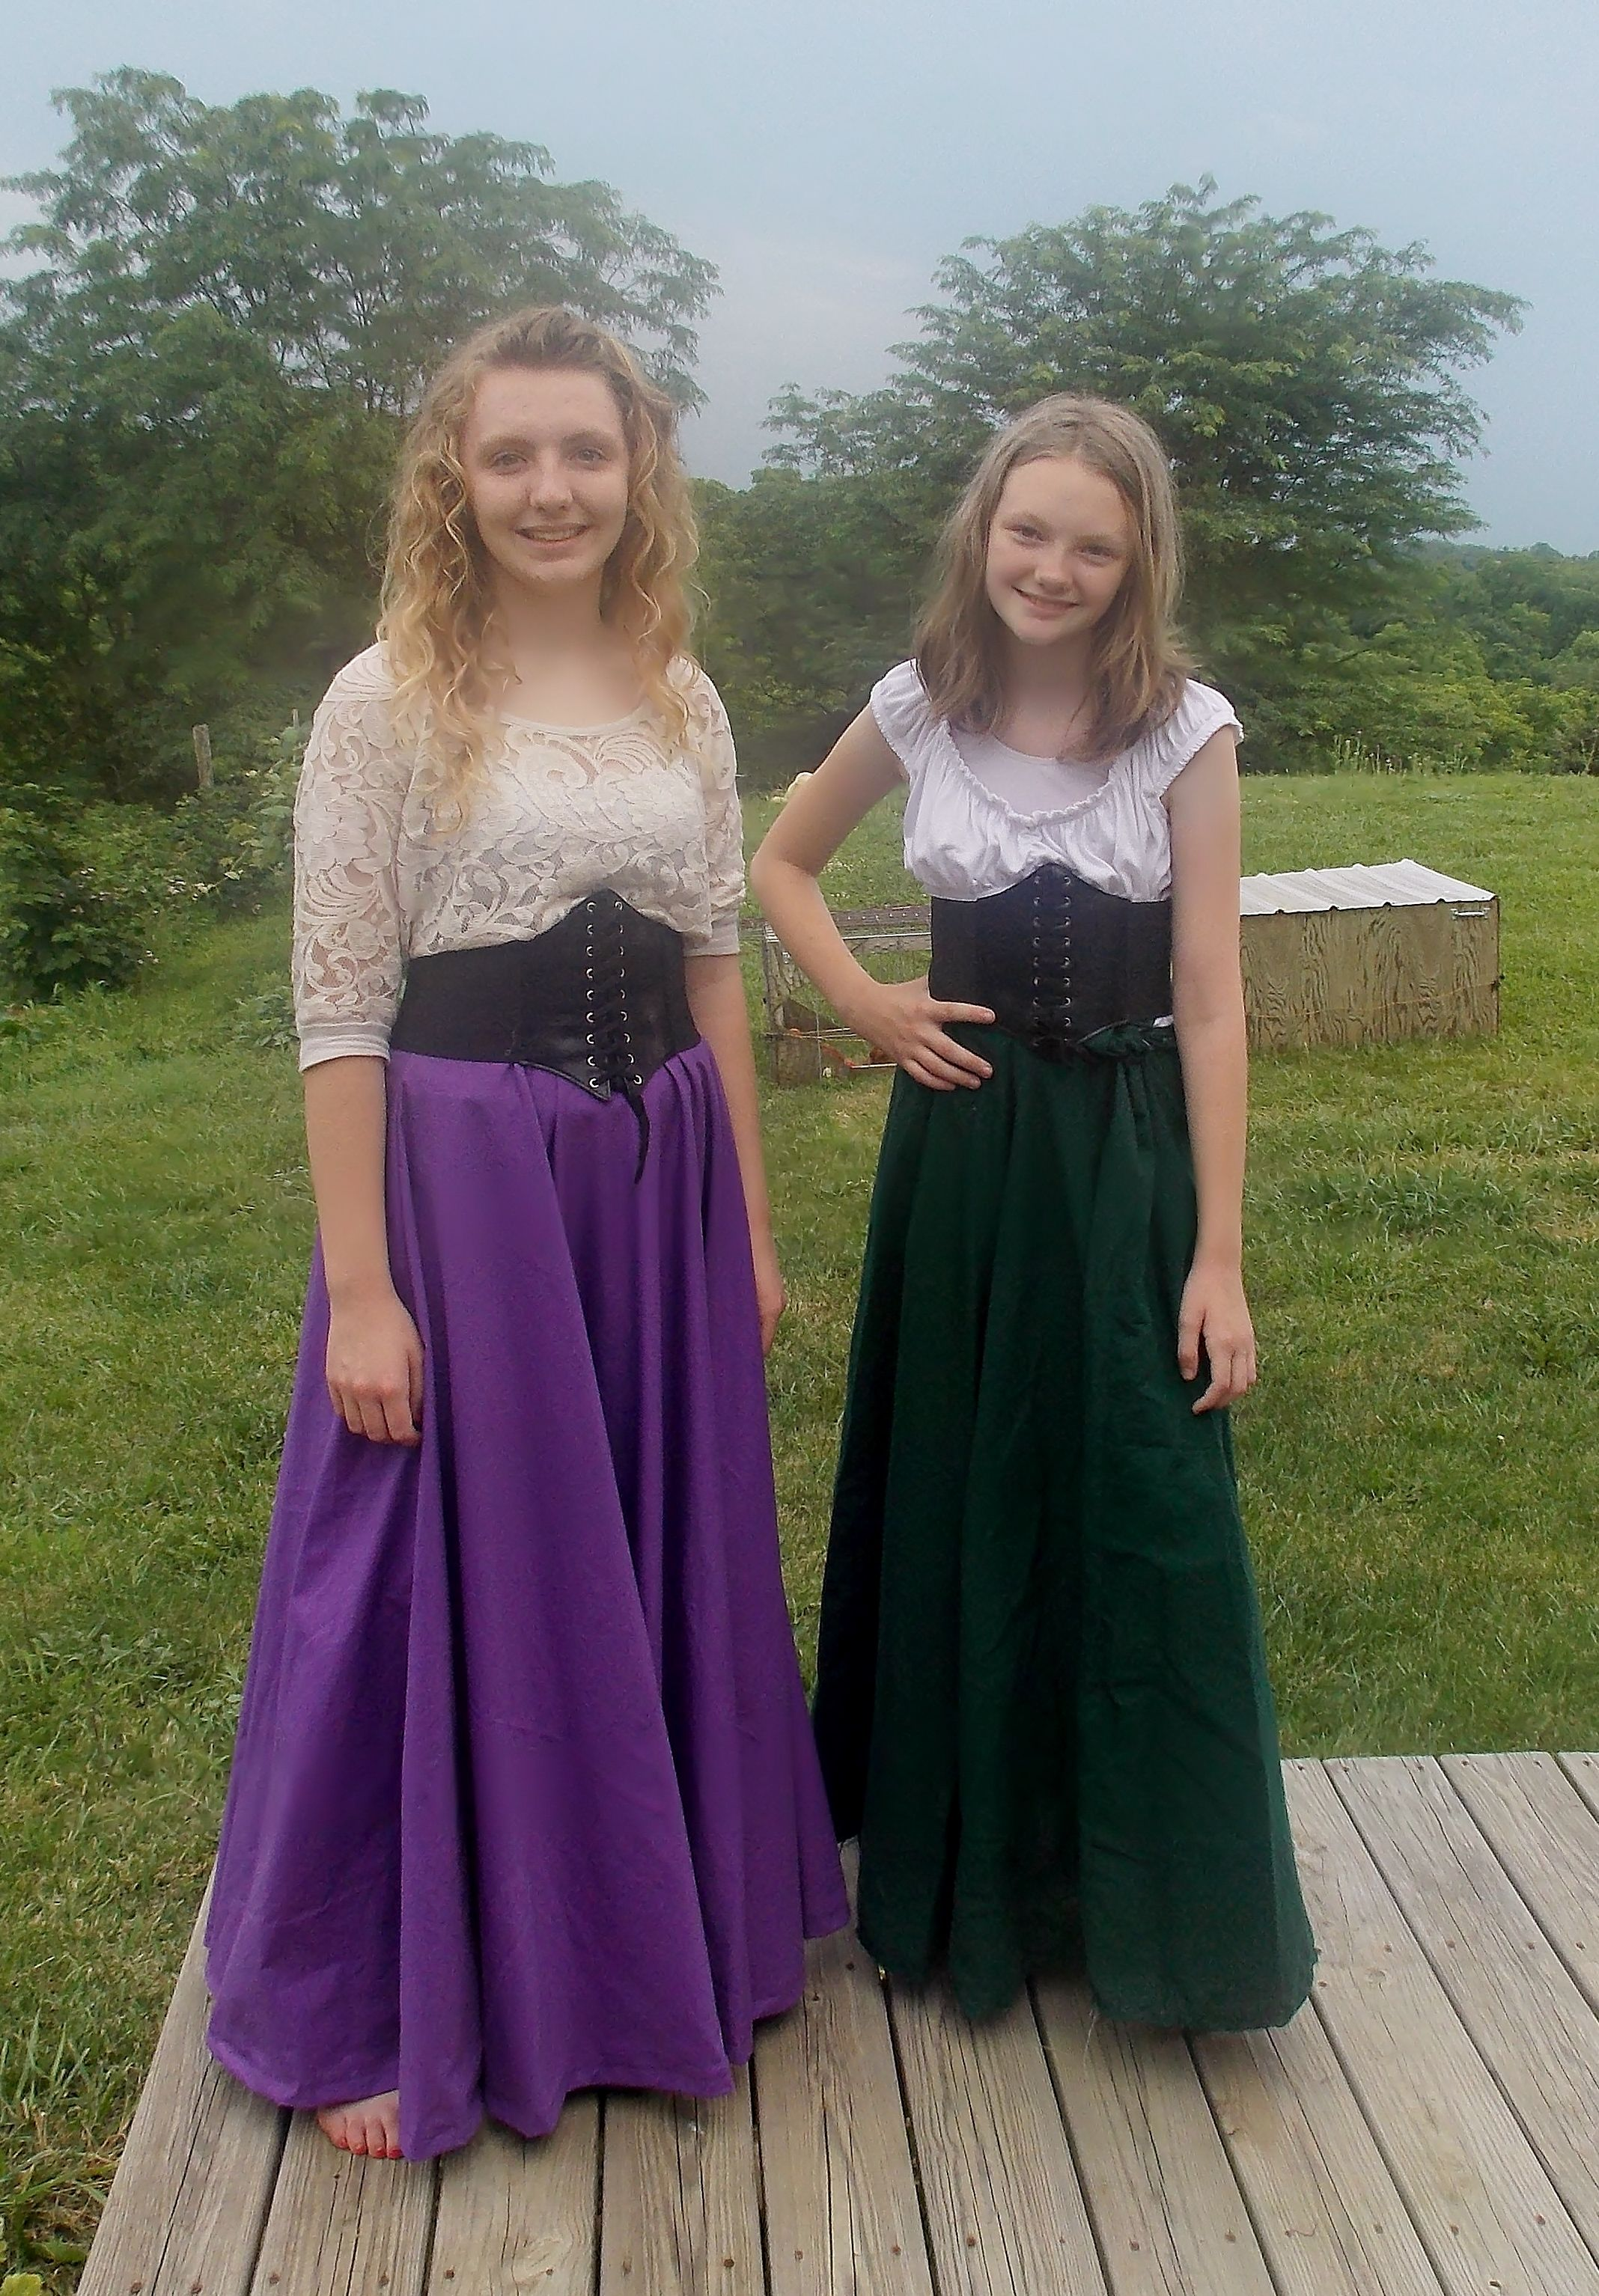 Homemade medieval outfits Circle skirts, peasant blouses and $2 corset  belts from Amazon.